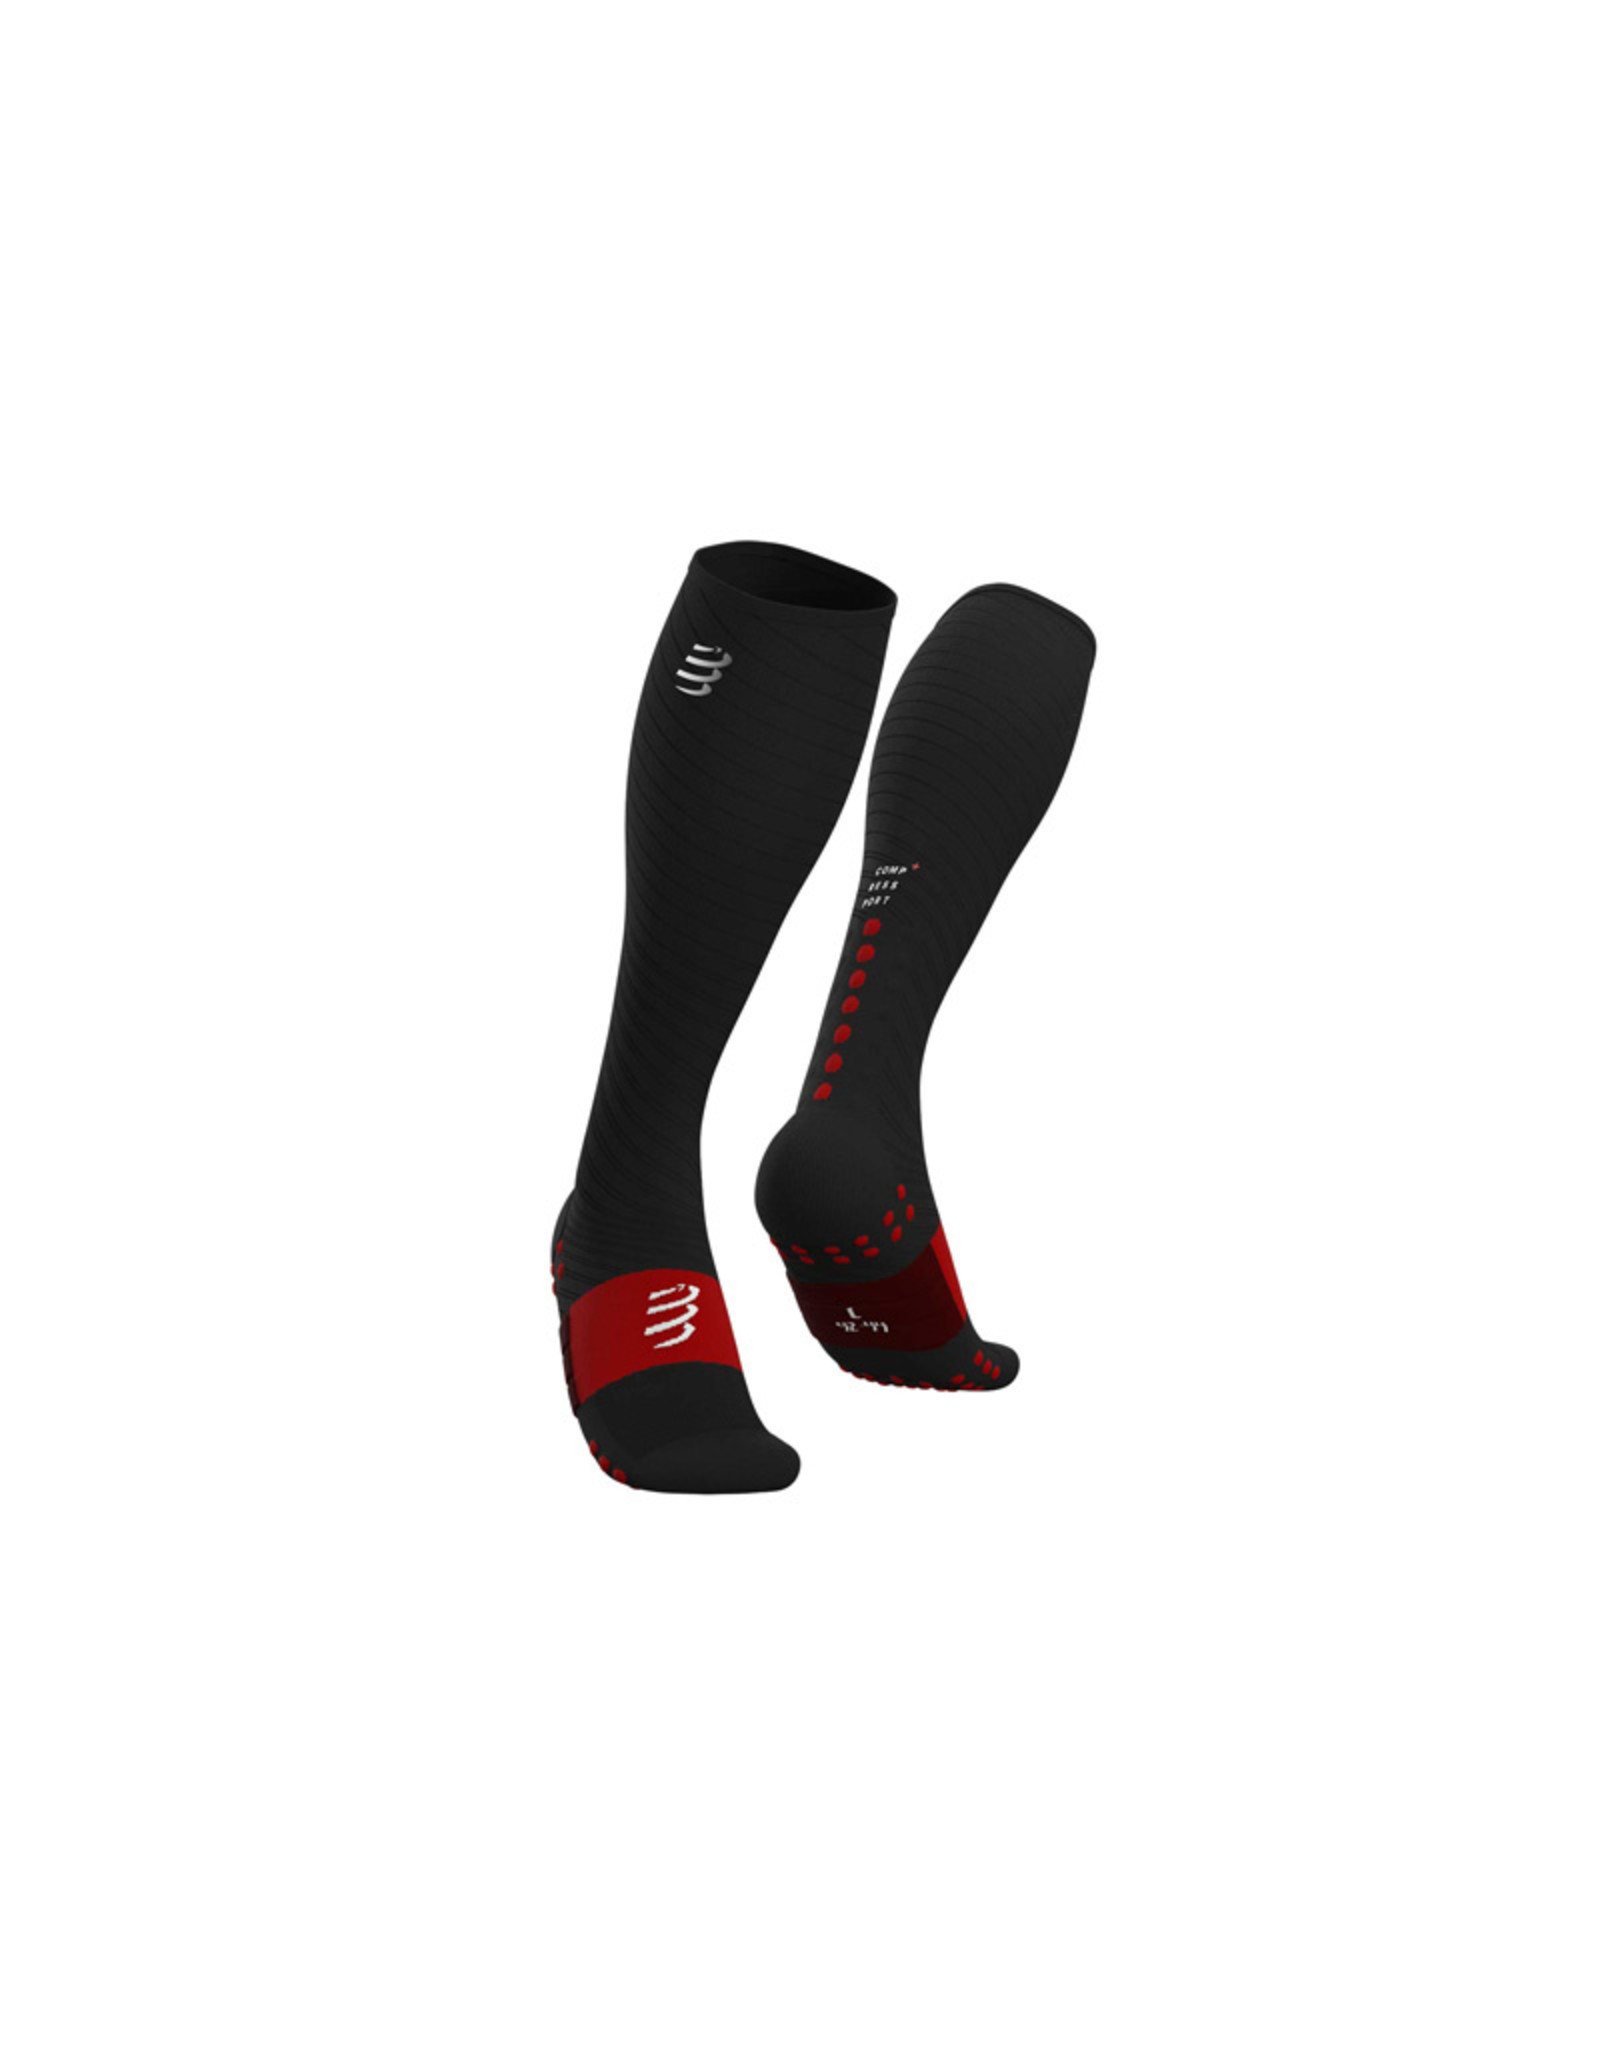 Compressport Full Socks Recovery Chaussettes De Compression - Noir